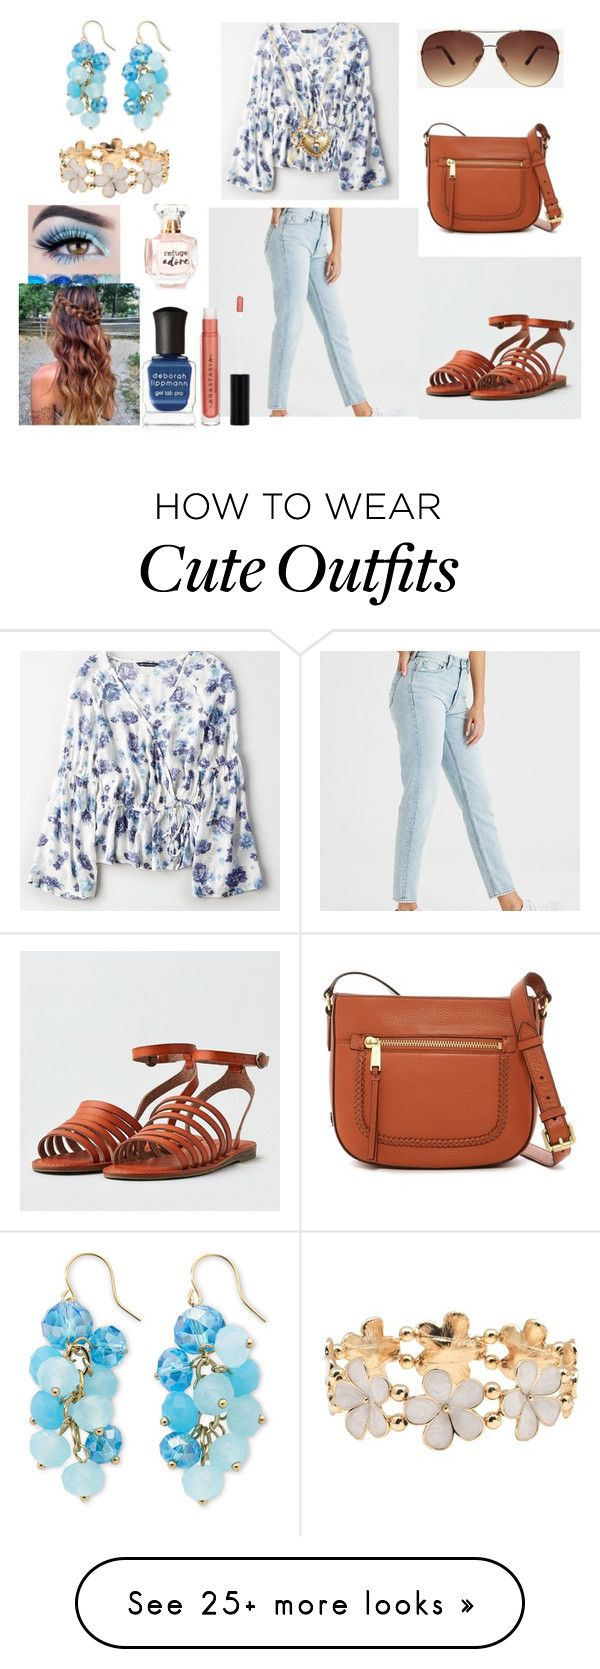 """Cute Spring Outfit"" by holly32196-1 on Polyvore featuring American Eagle Outfitters, Ashley Stewart, Cole Haan, Mixit, Carelle, M&Co, Deborah Lippmann, Disney and Refuge"